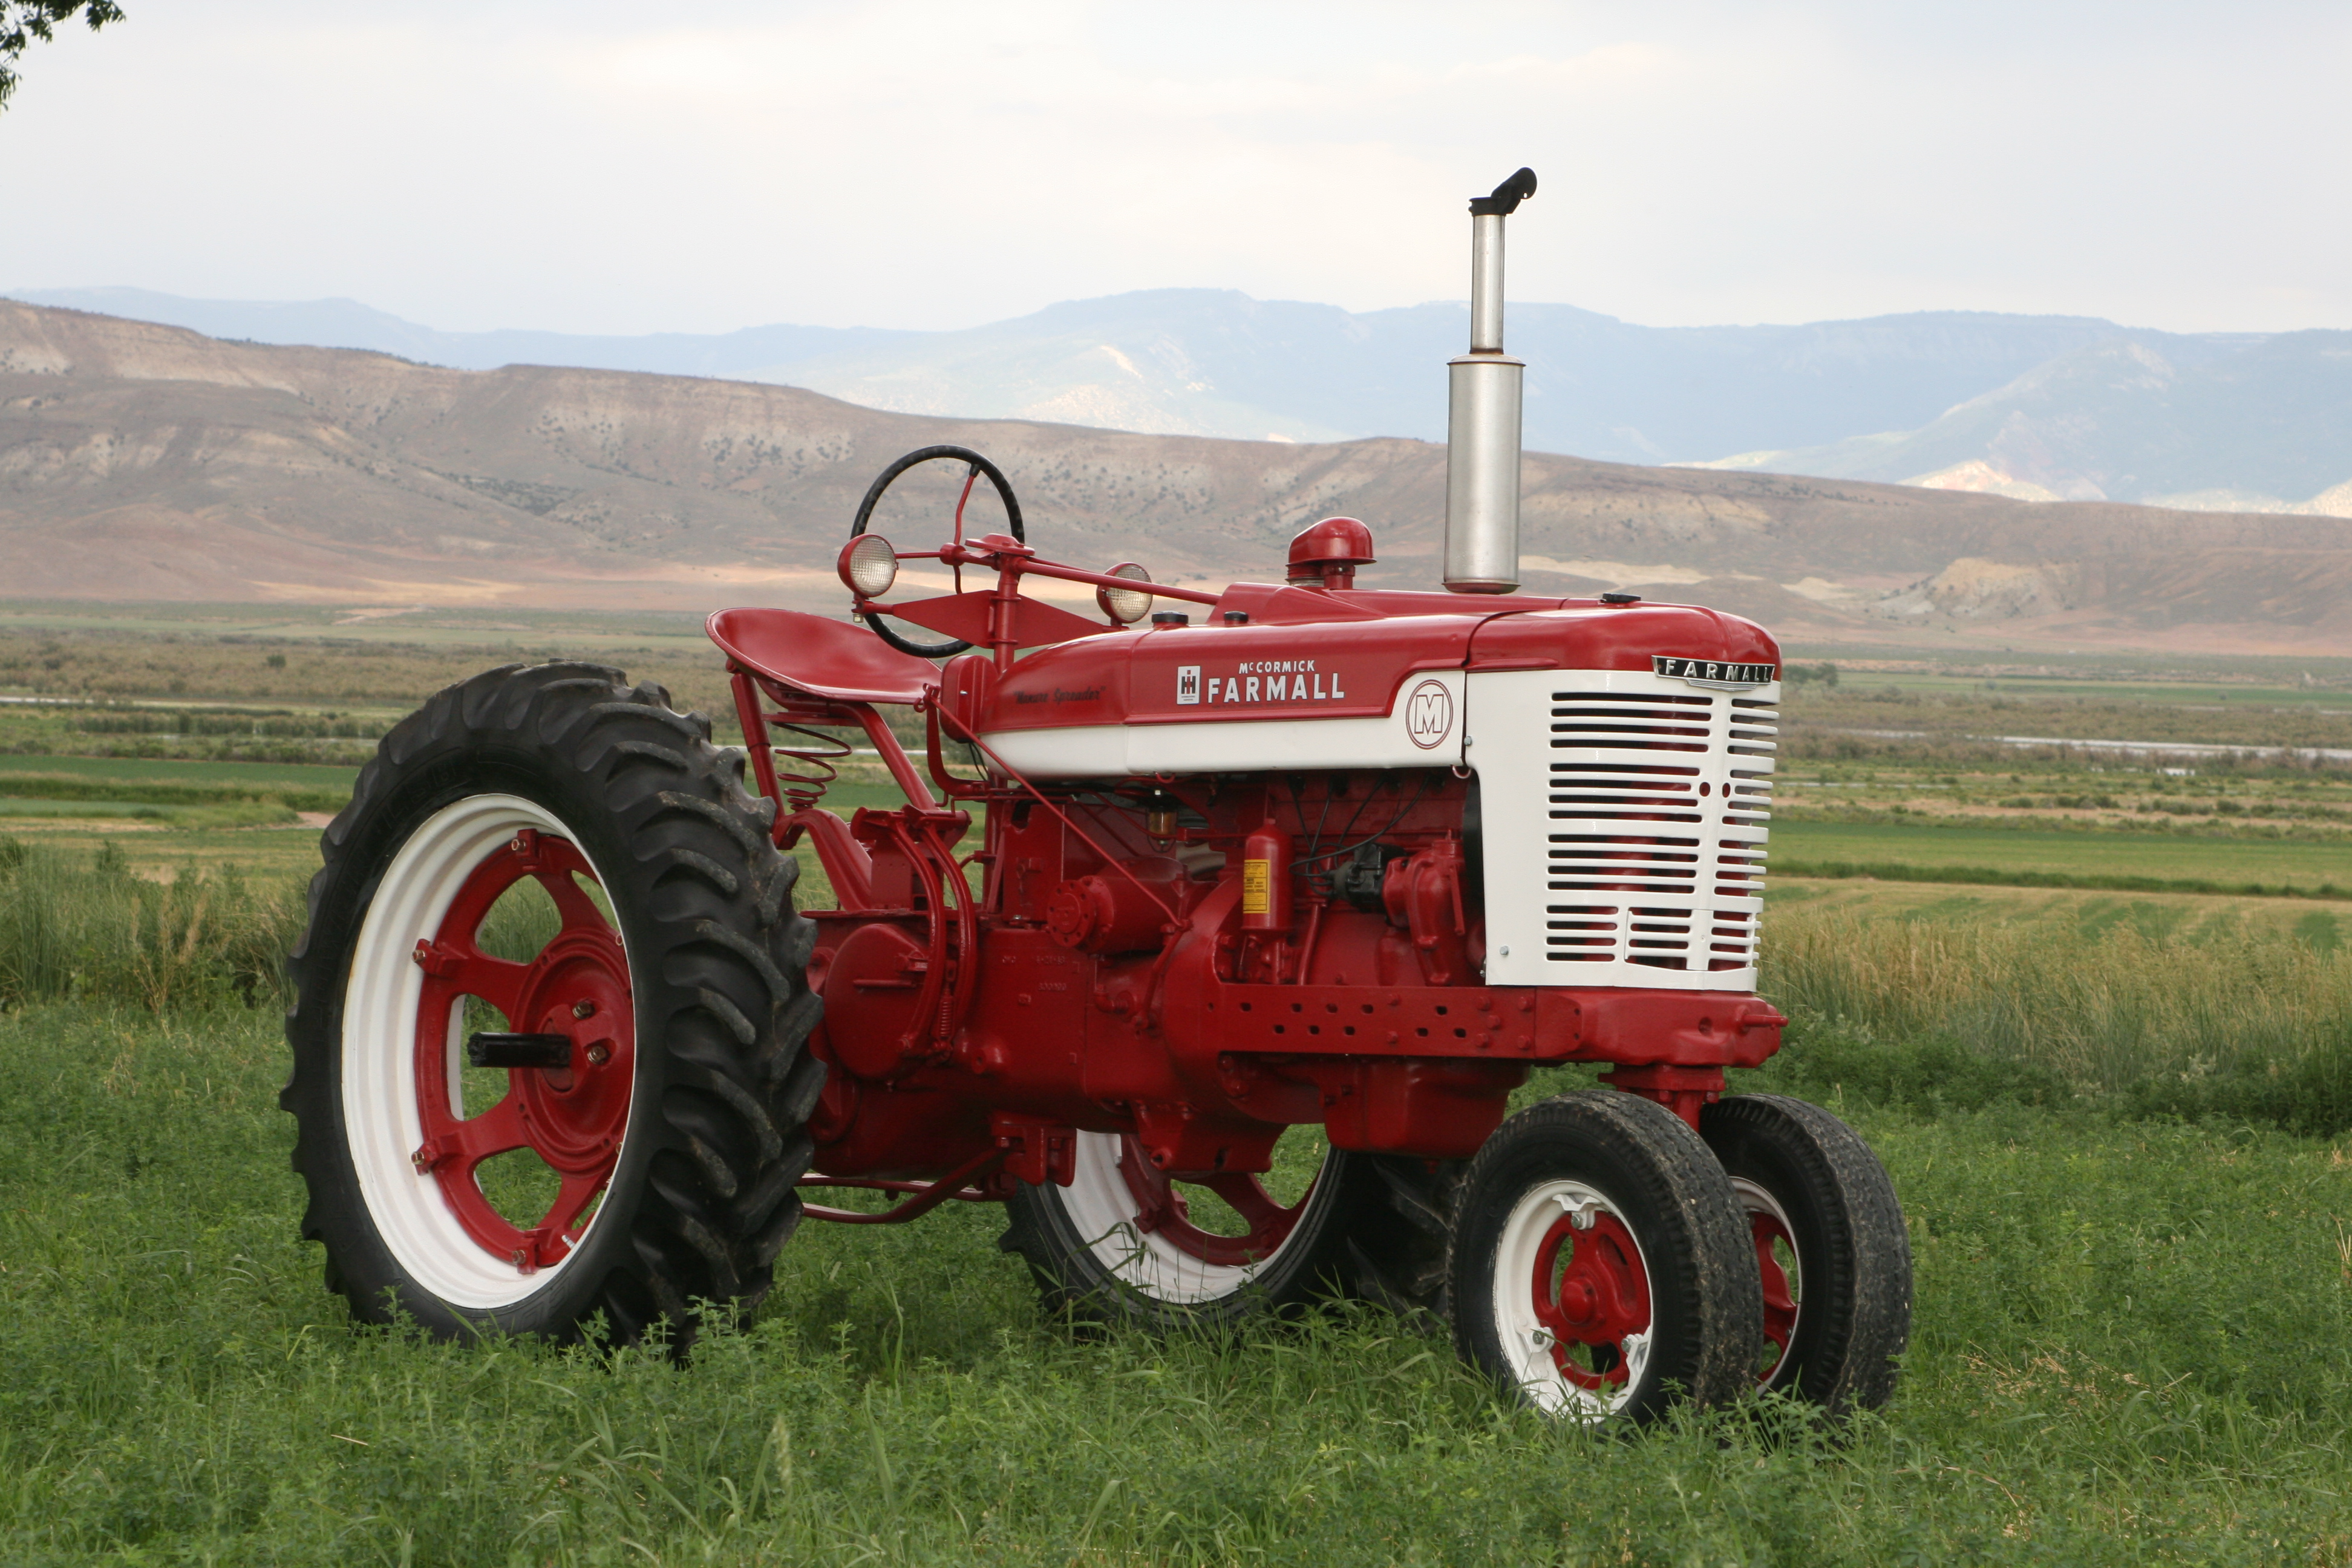 Mysteries Revealed – Farmall v. International Tractors